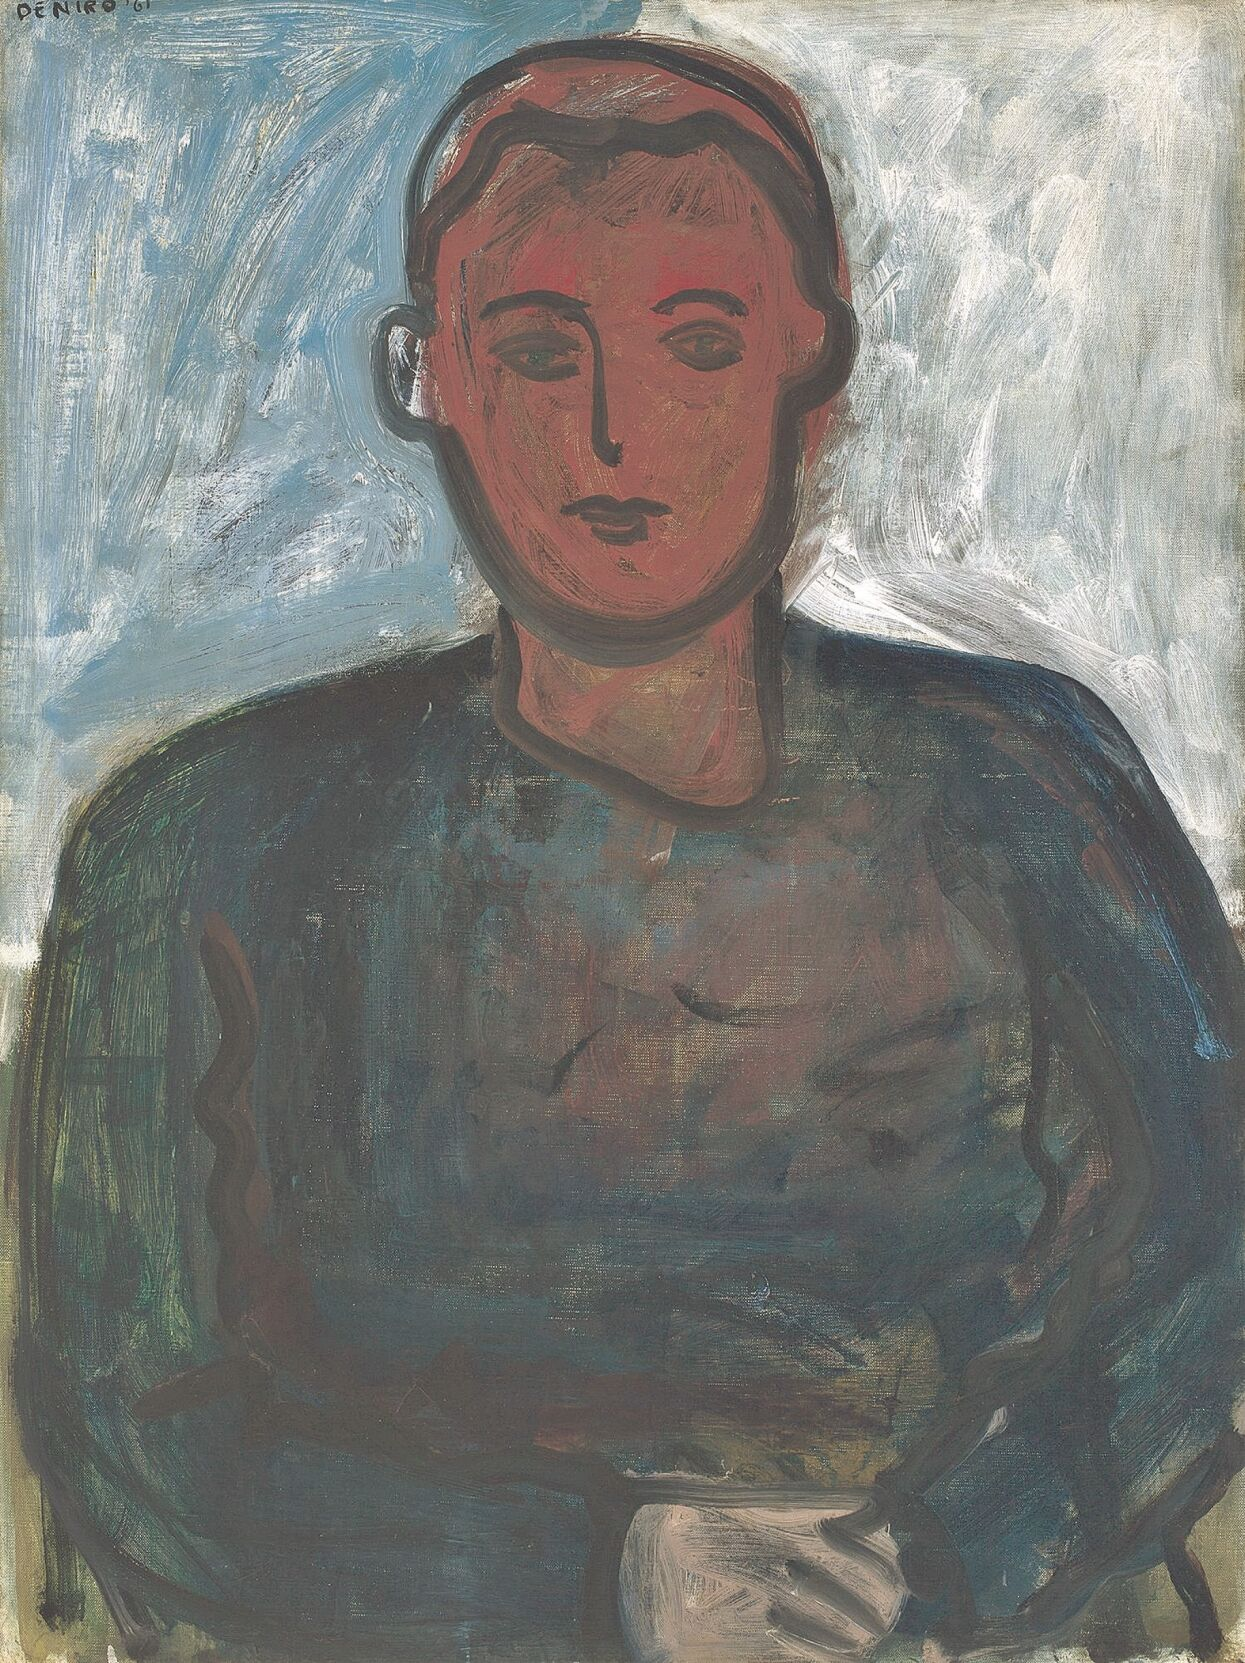 Portrait-of-a-Young-Man-with-Red-Face-1961-T5.jpg